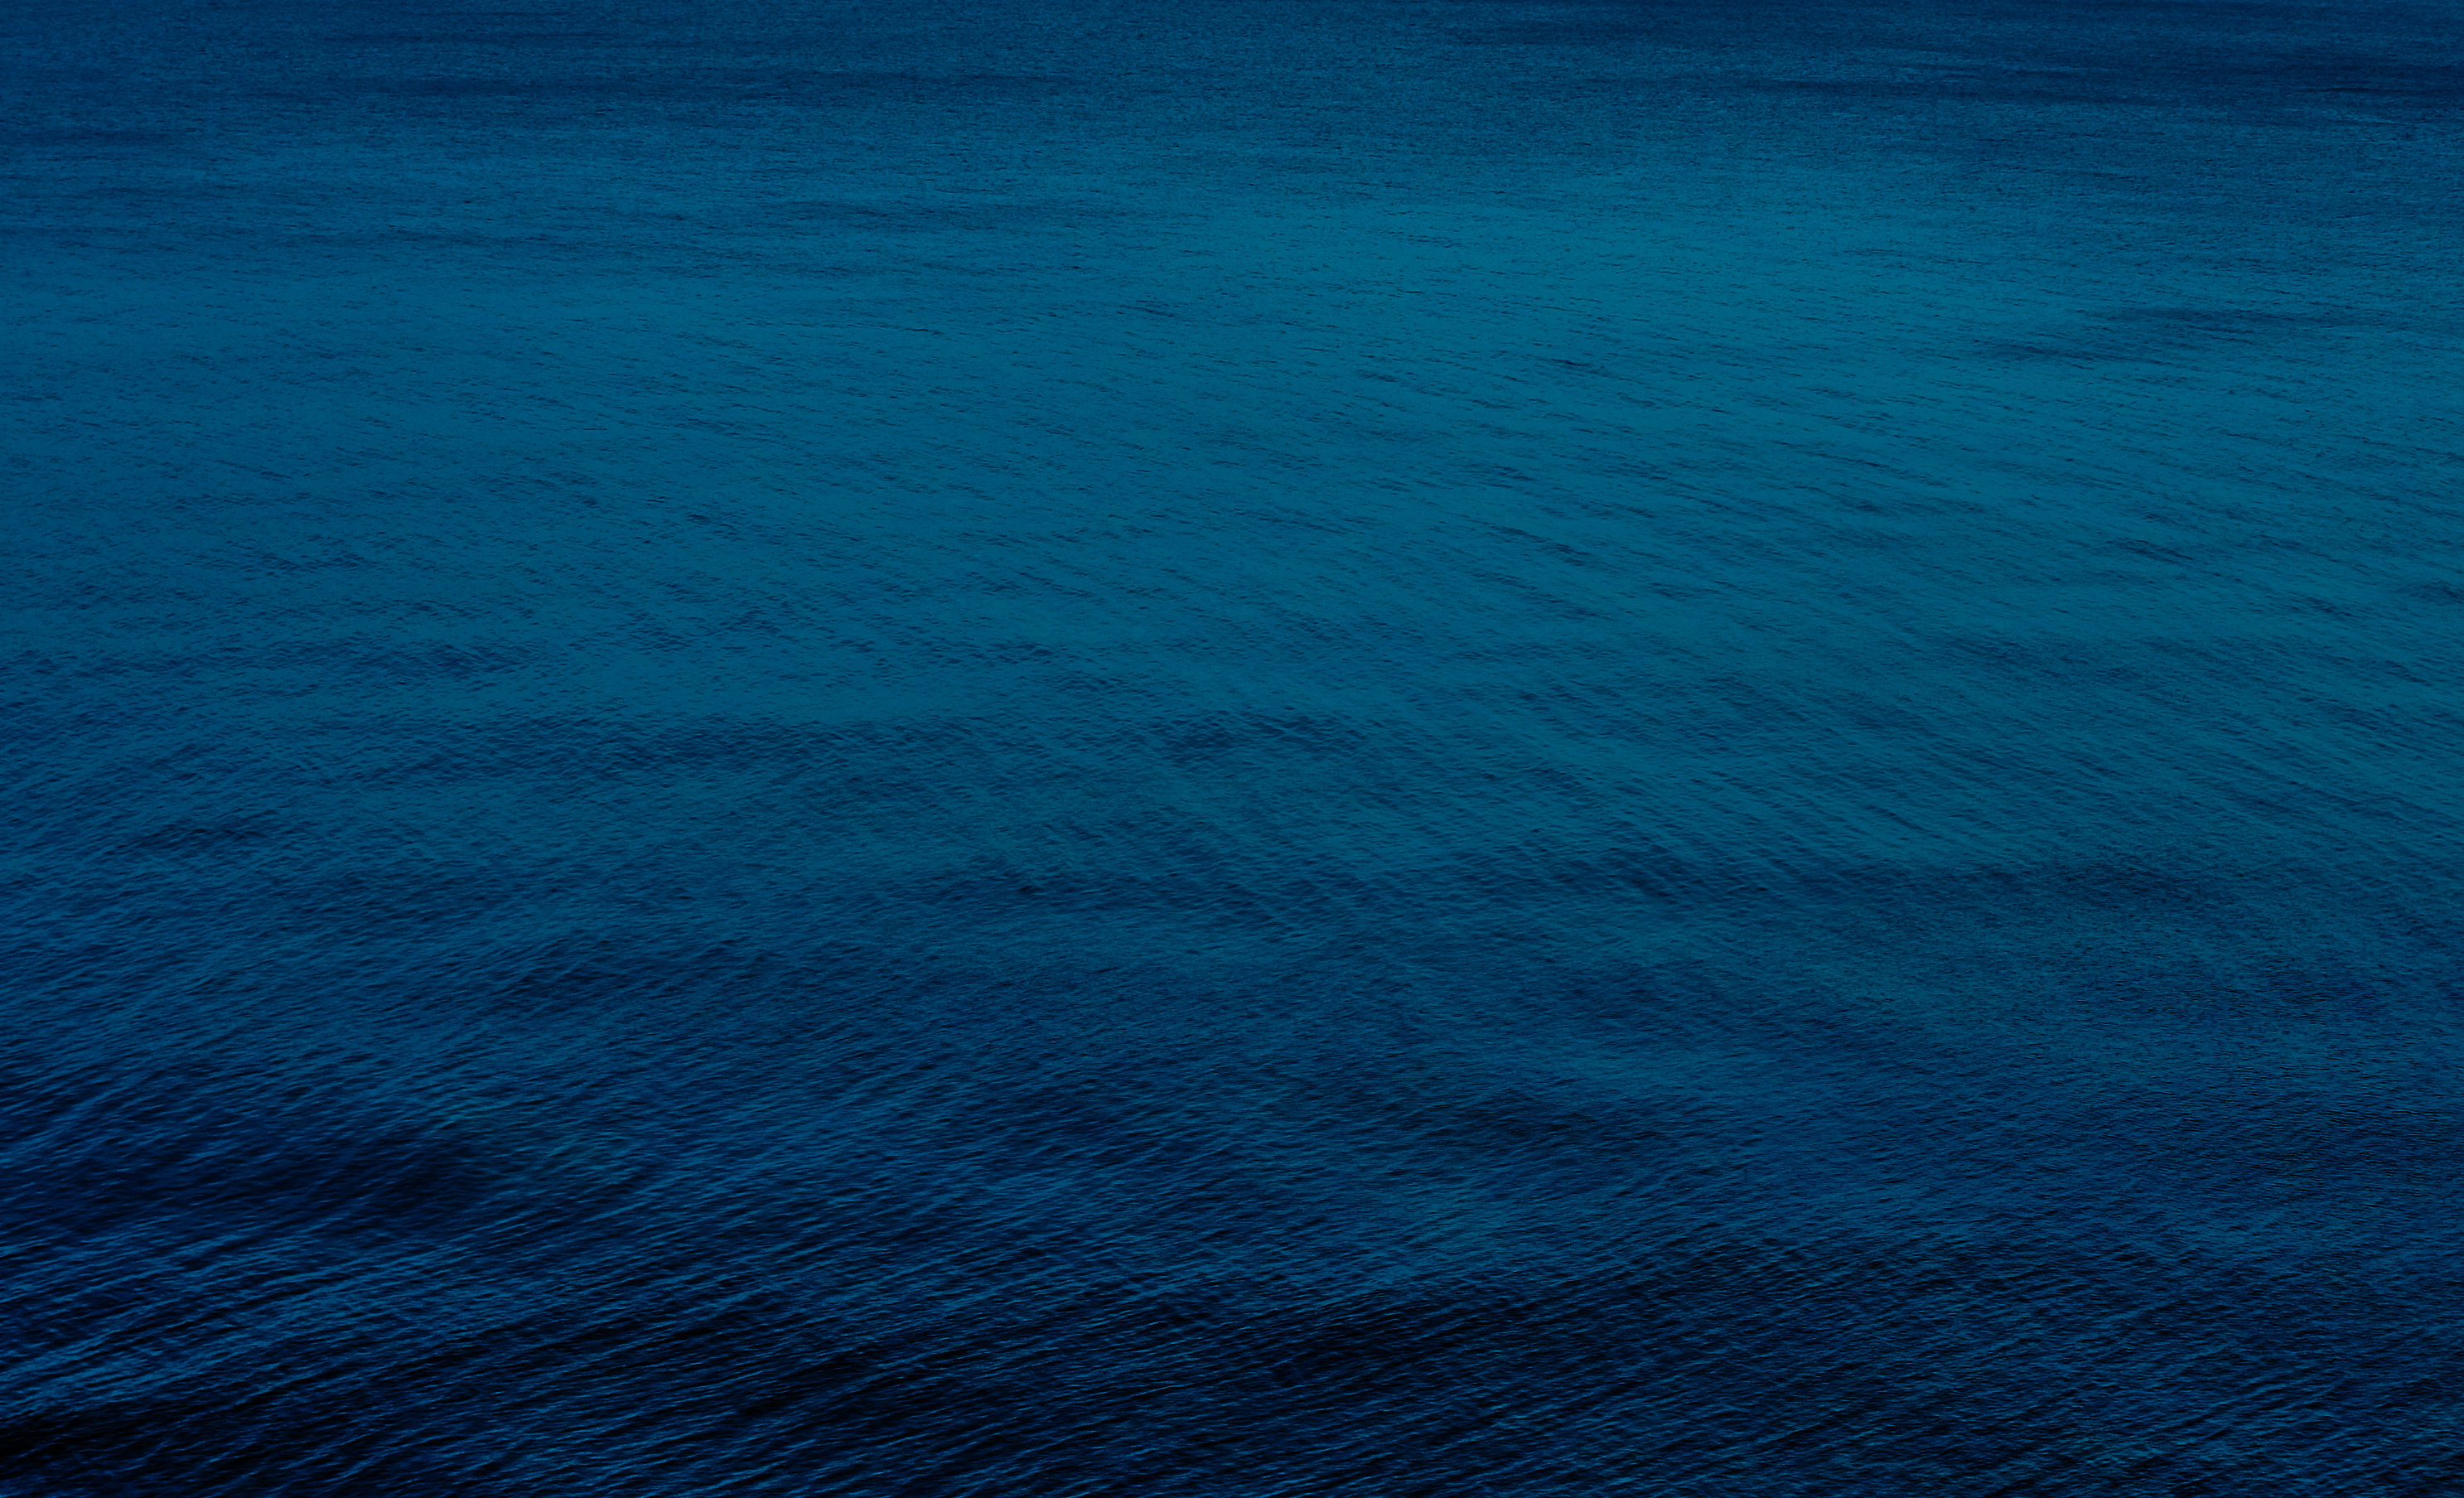 Green Wallpaper Iphone 5 Deep Blue Sea Pictures Download Free Images On Unsplash